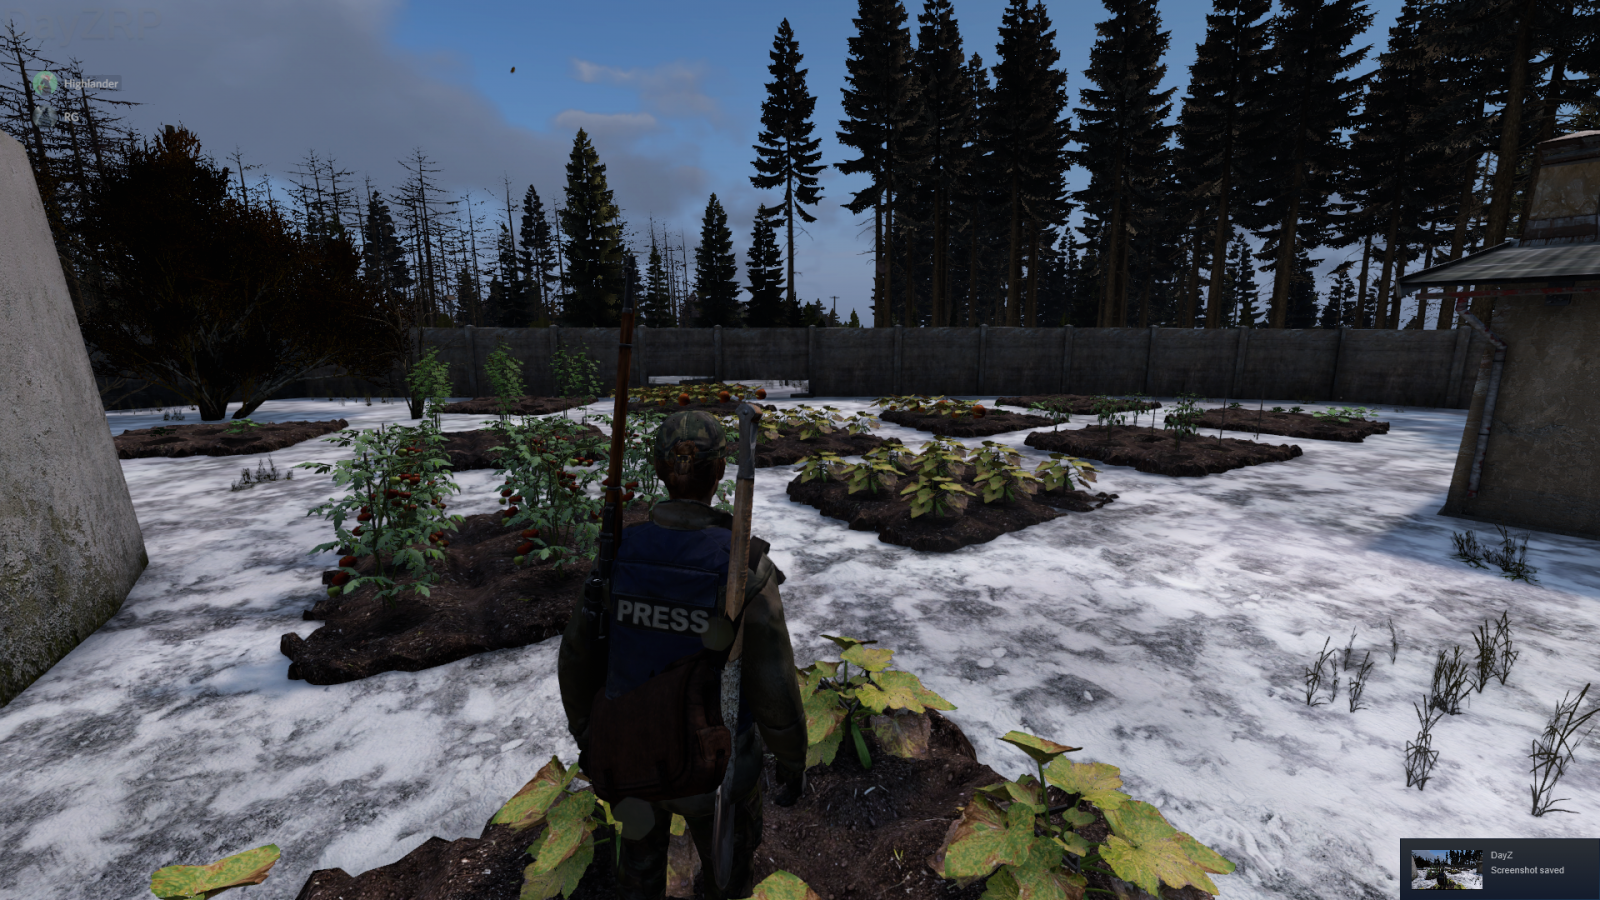 Farming with GMR